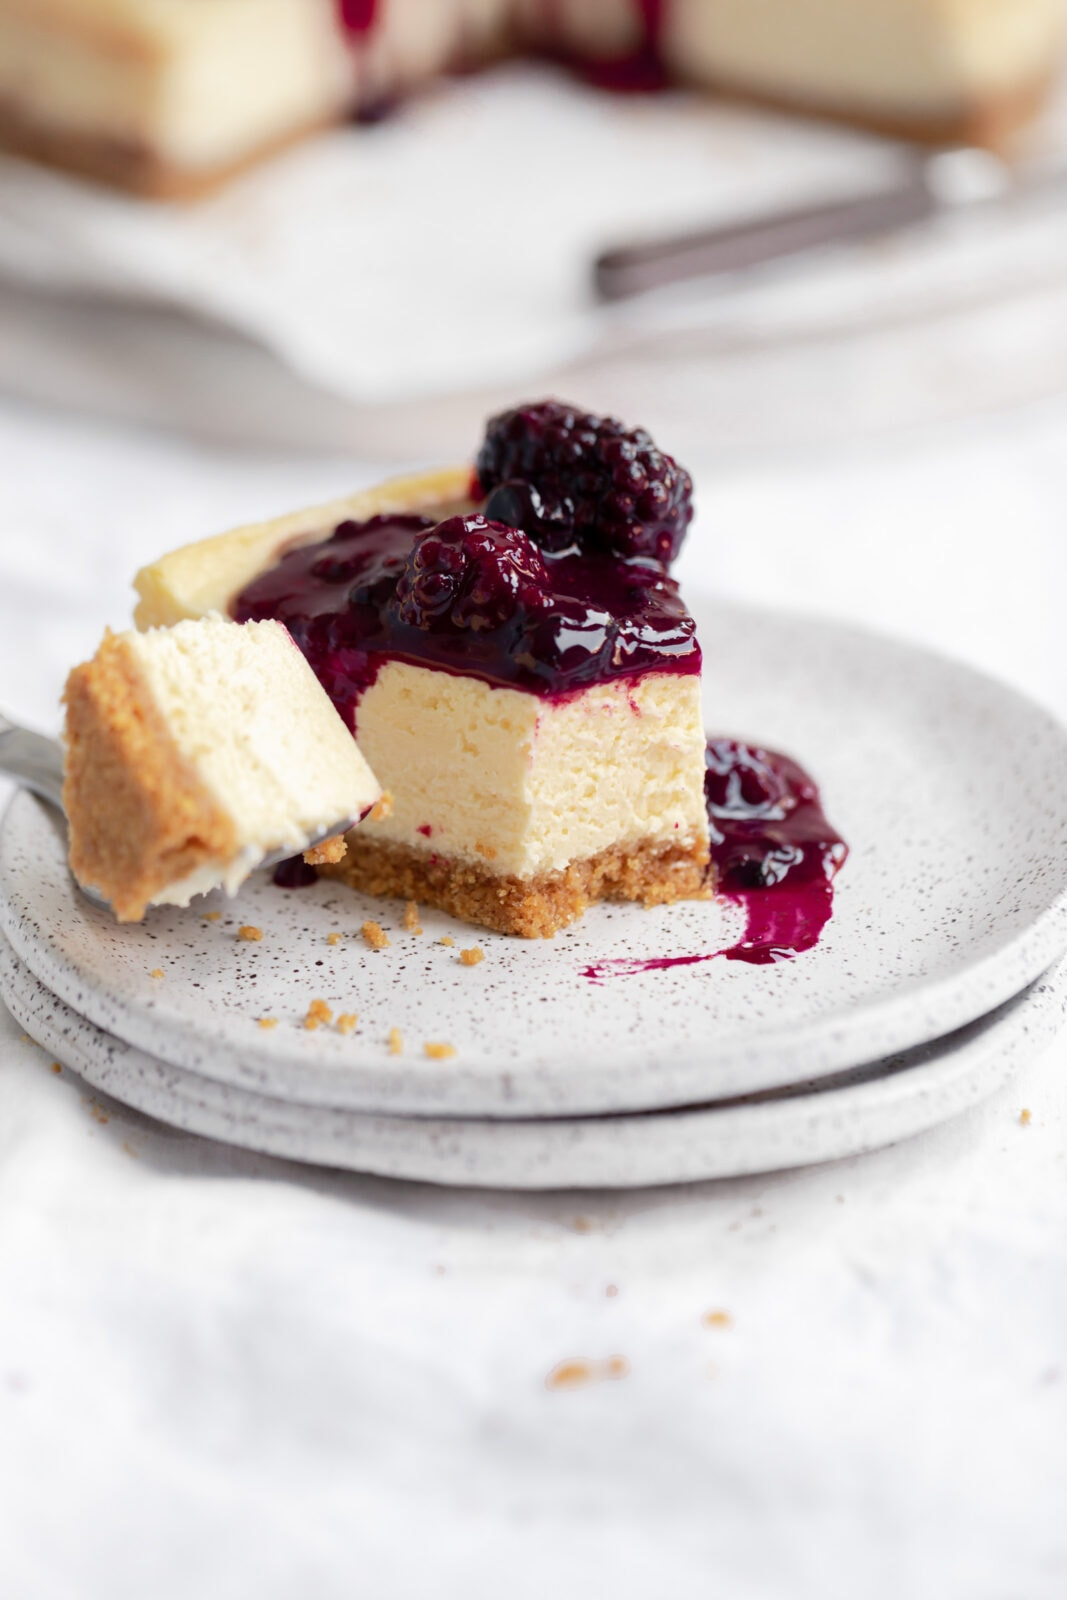 slice of cheesecake with berry compote on a plate